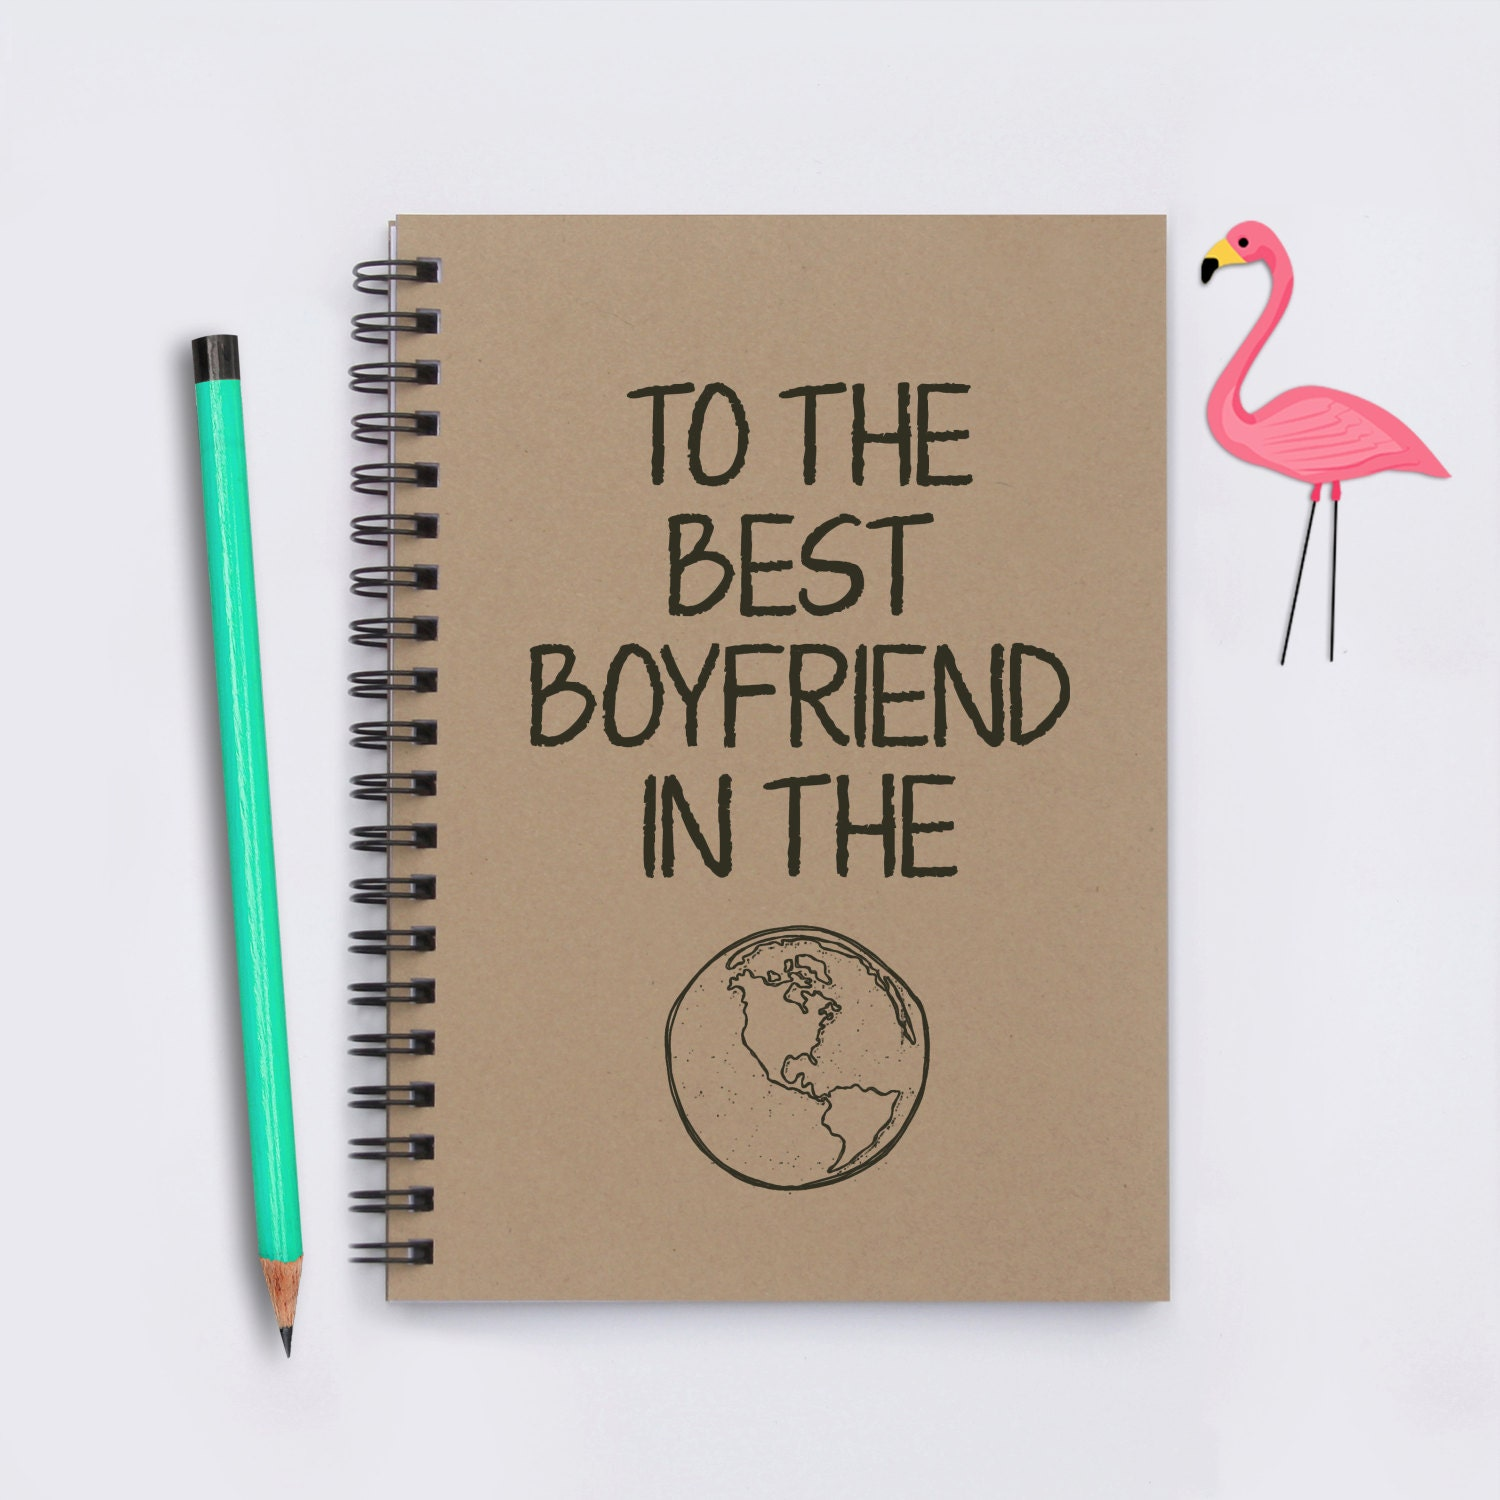 Gift for boyfriend to the best boyfriend in the world for Top gifts for boyfriends